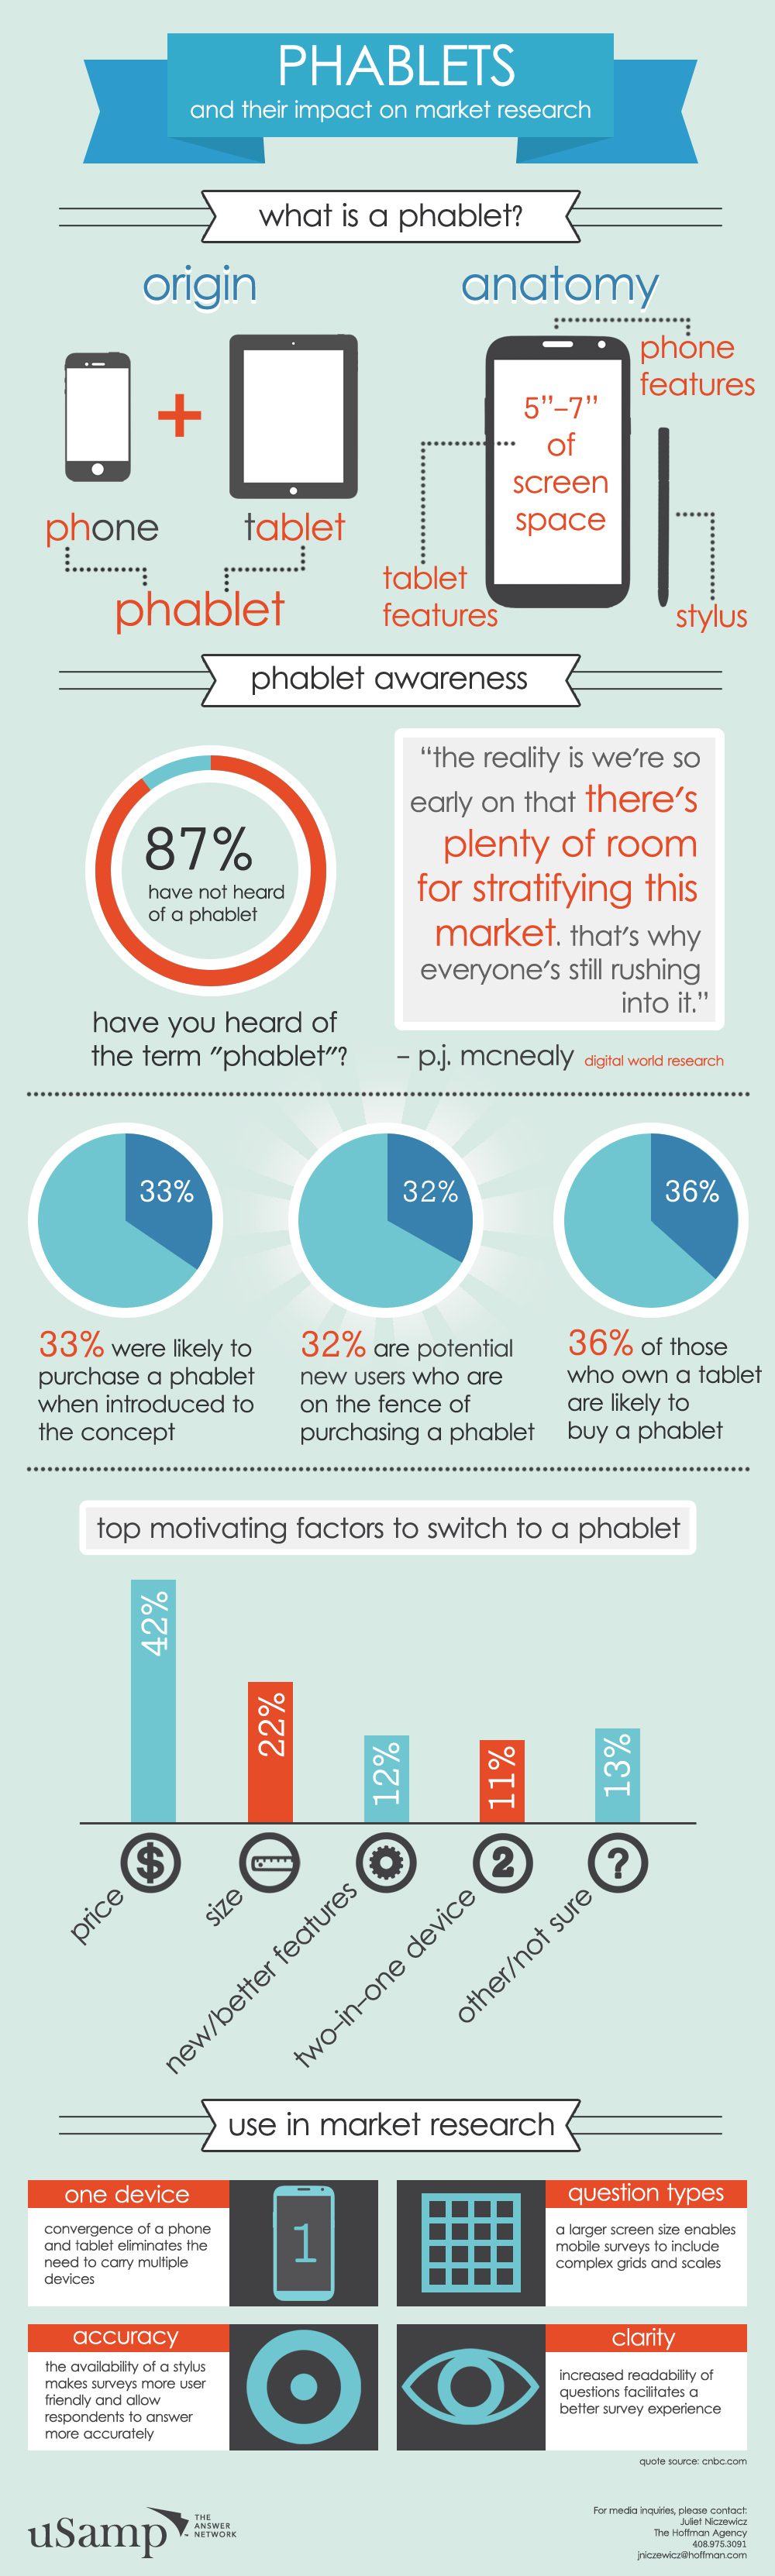 #infografía @uSamp #Phablets and  their impact on market rsearch vía @luciabrotons #lin